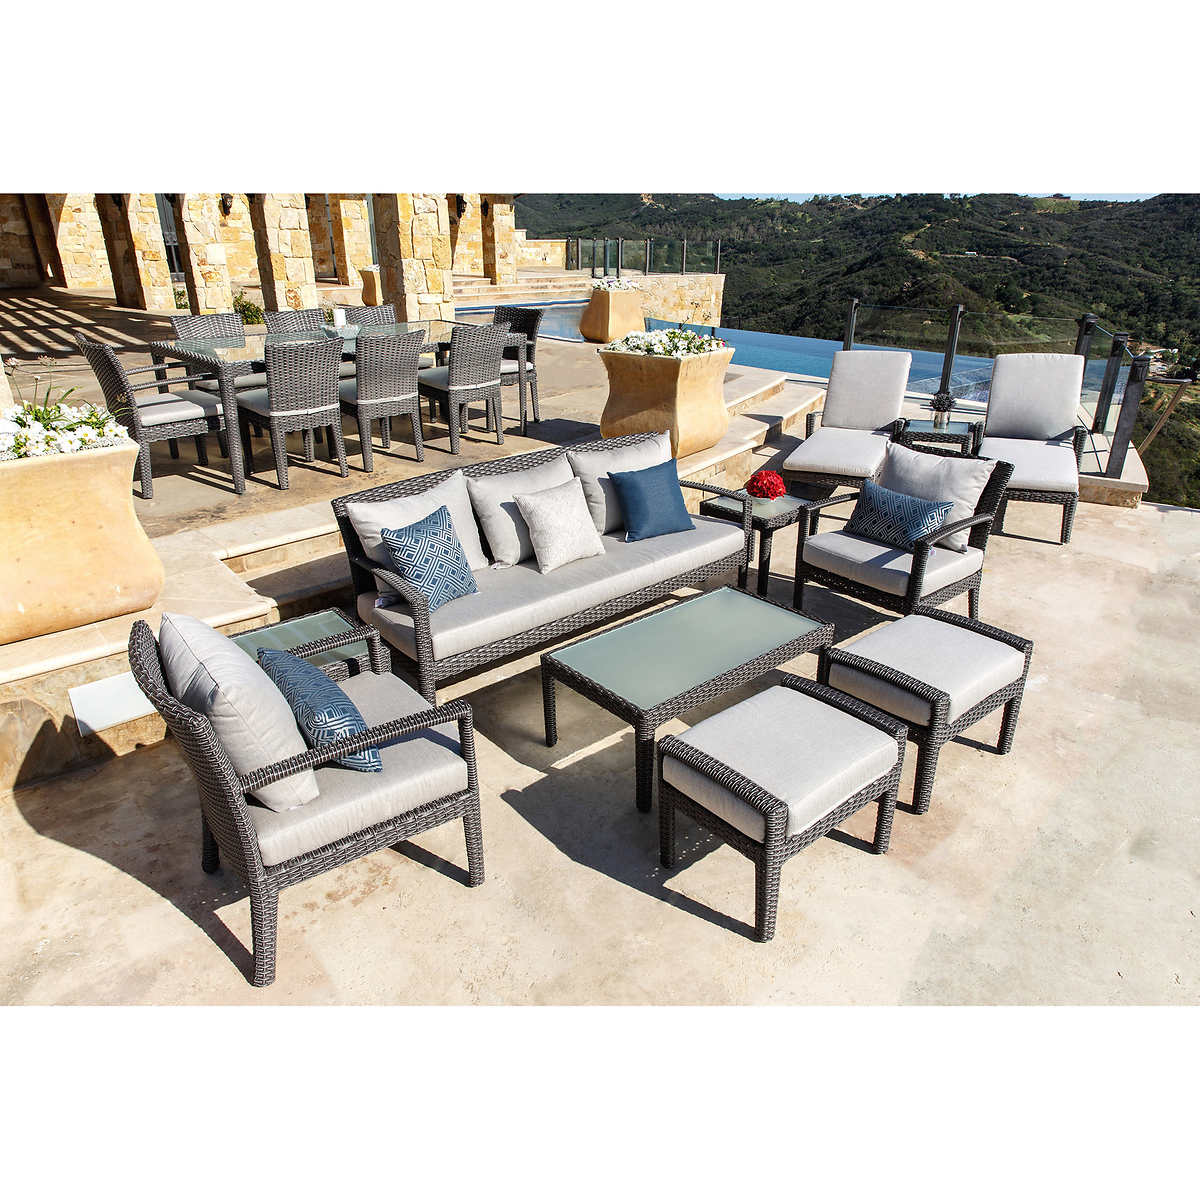 Garden furniture near me garden bar table and stools ci4s for Patio furniture near me